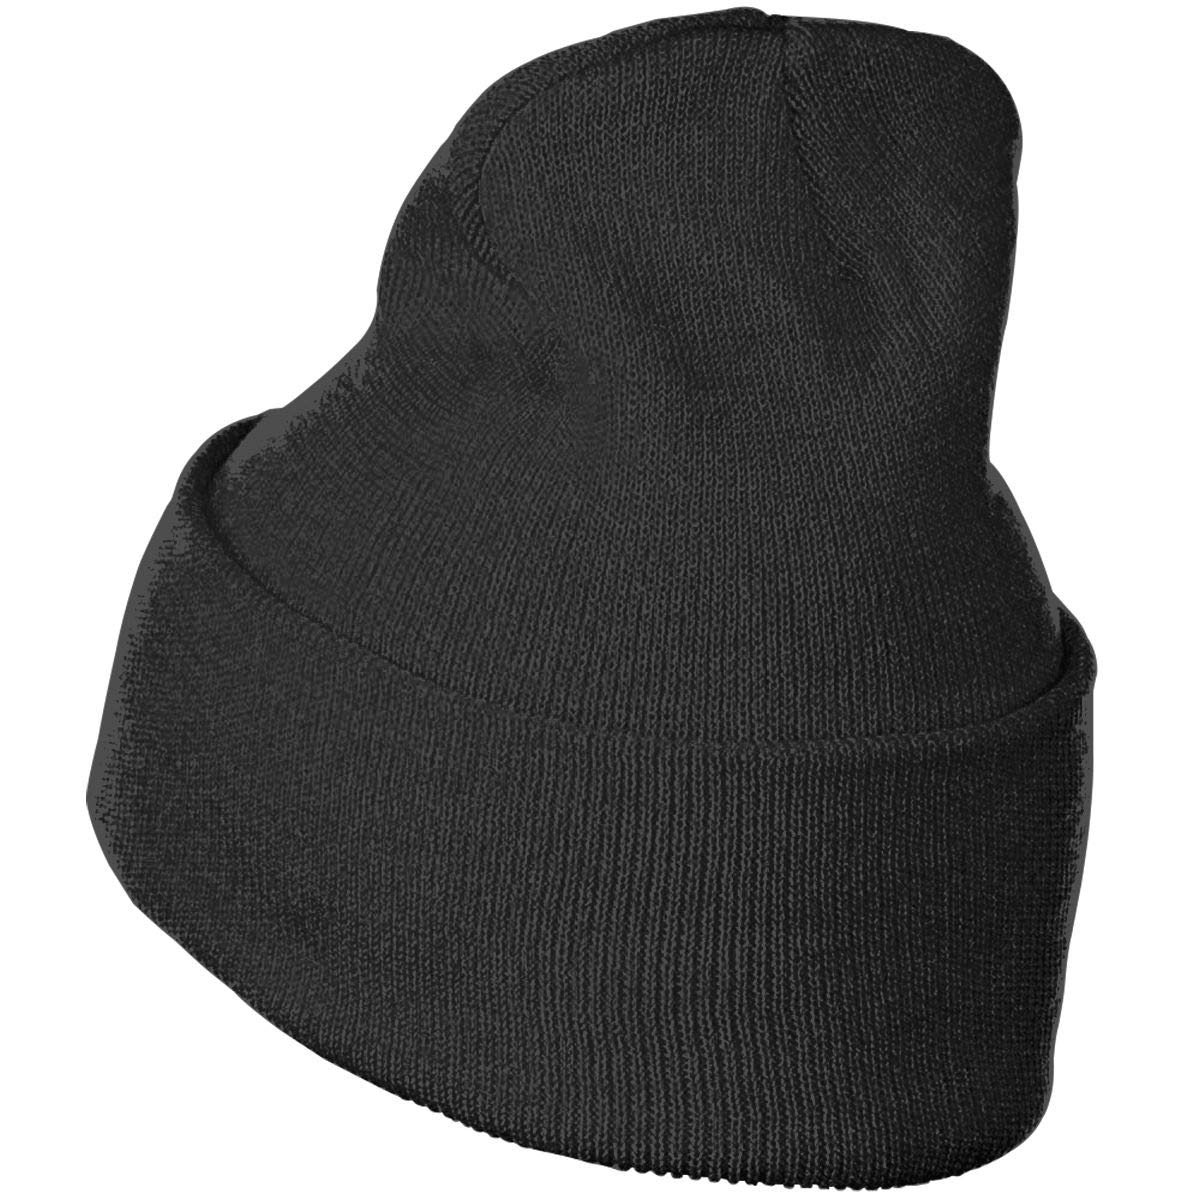 Horizon-t UFO Unisex 100/% Acrylic Knitting Hat Cap Fashion Beanie Hat